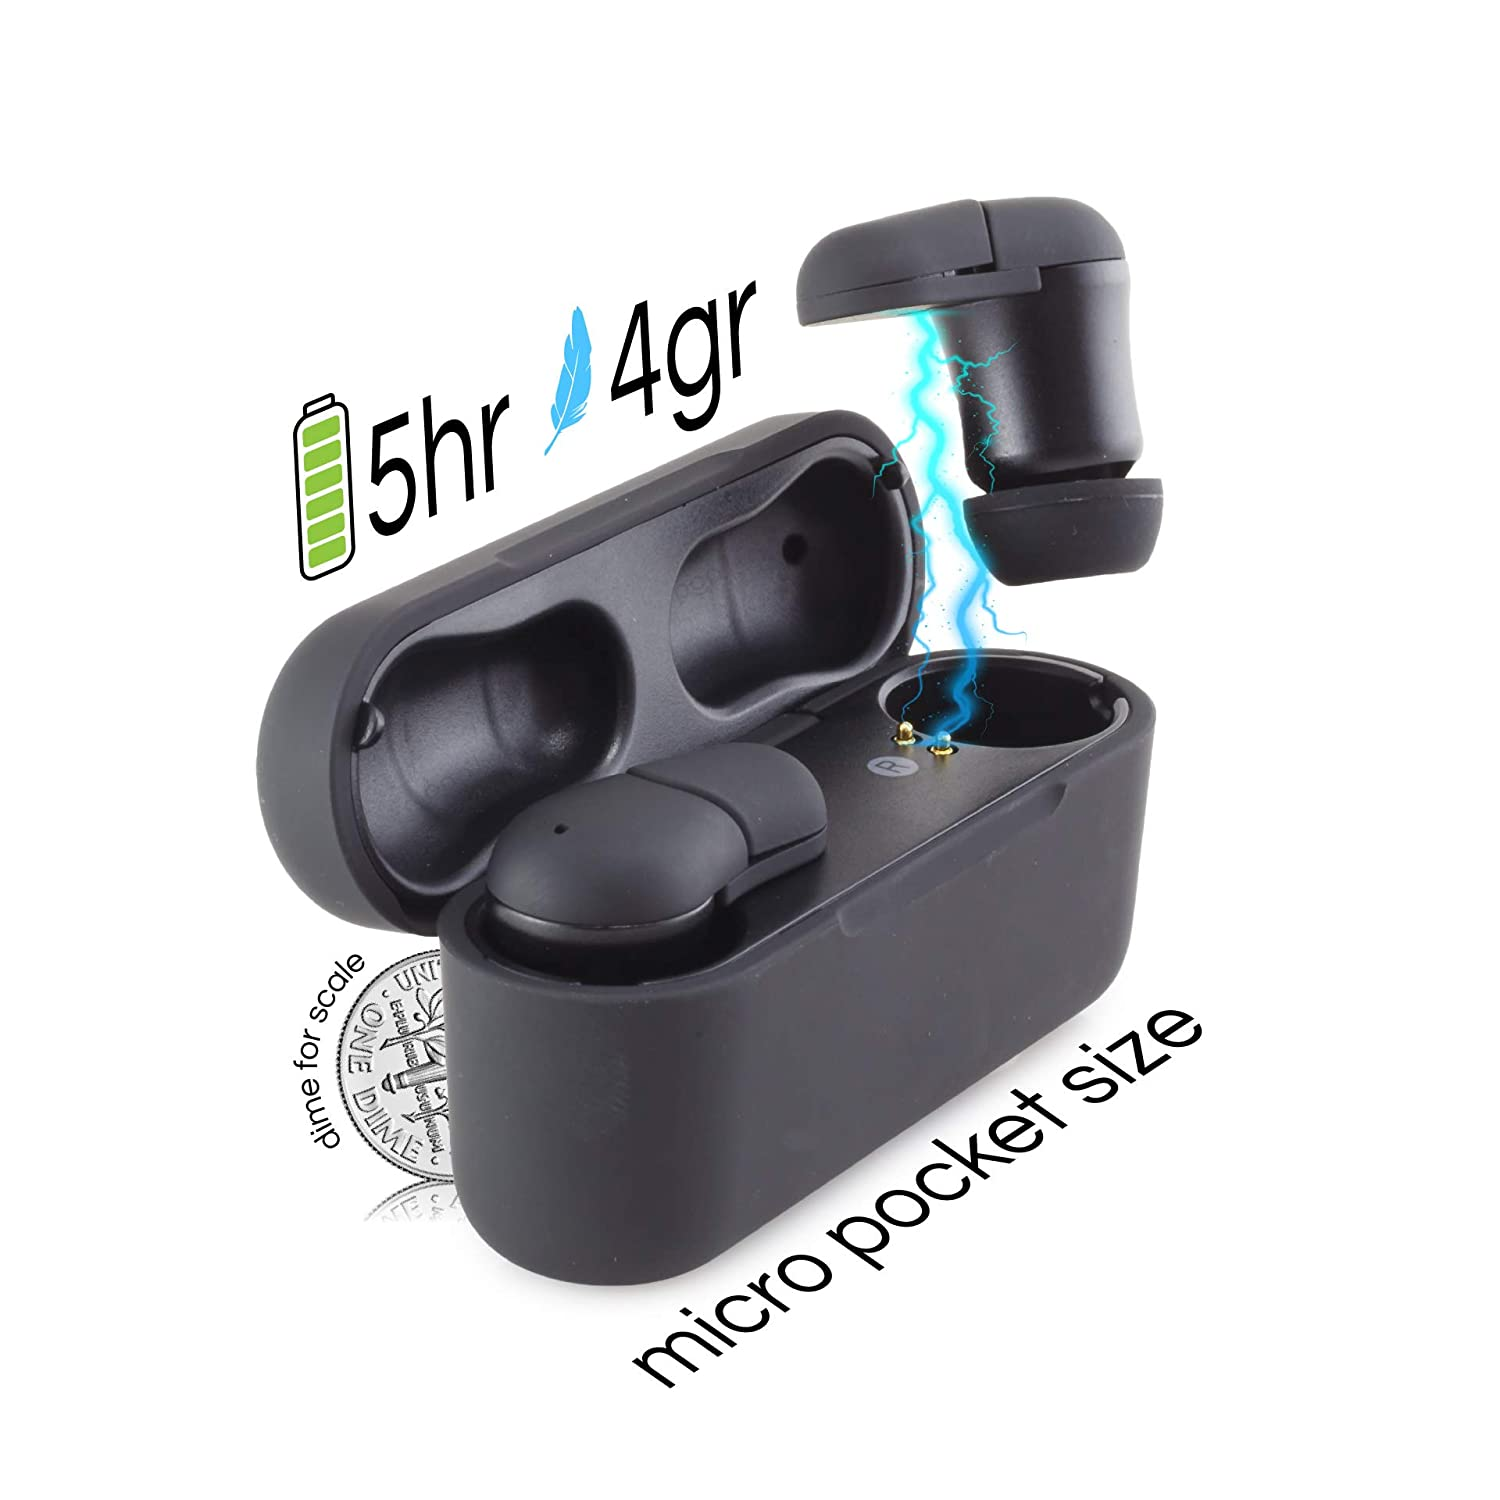 Aero True Wireless Bluetooth 5.0 Earbuds – Built in Mic -Mini Compact TWS Ear Pods – Premium Audio Quality -Simple Pairing- Ultra Portable Charging Case for 15 Hours Play Time- Happiness Guarantee